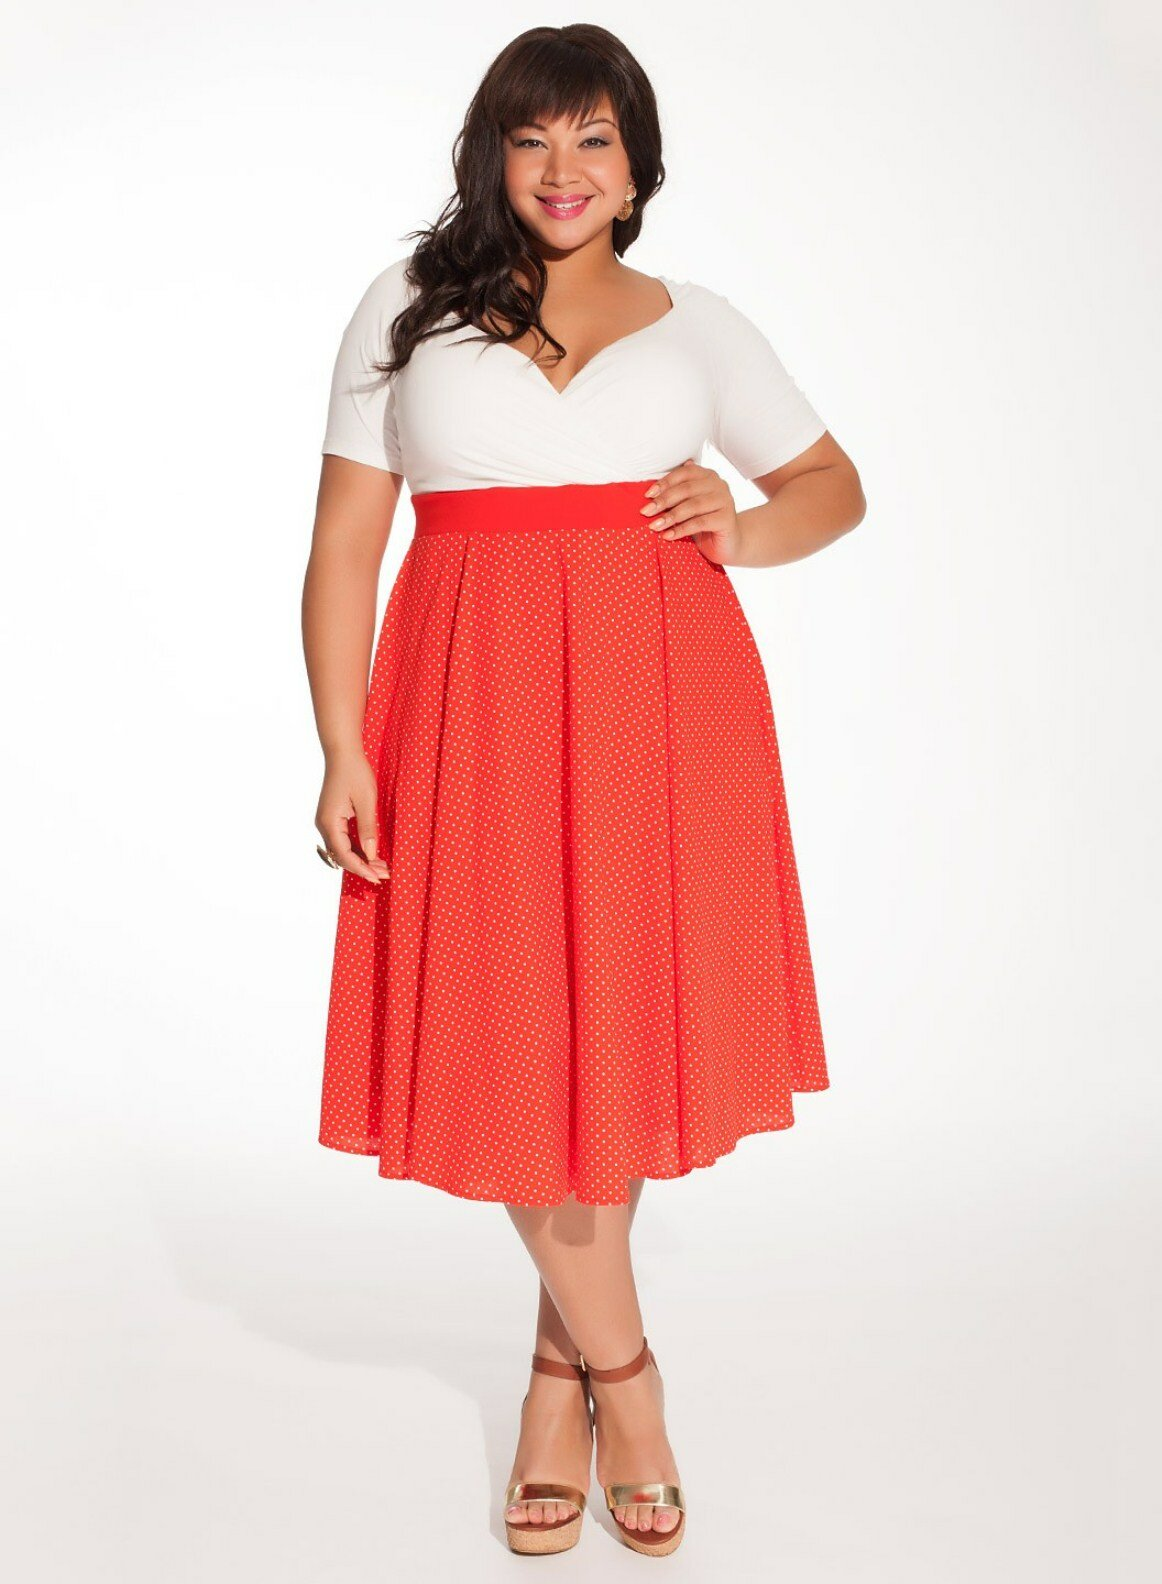 Plus size dresses for weddings guests: Pictures ideas, Guide to ...